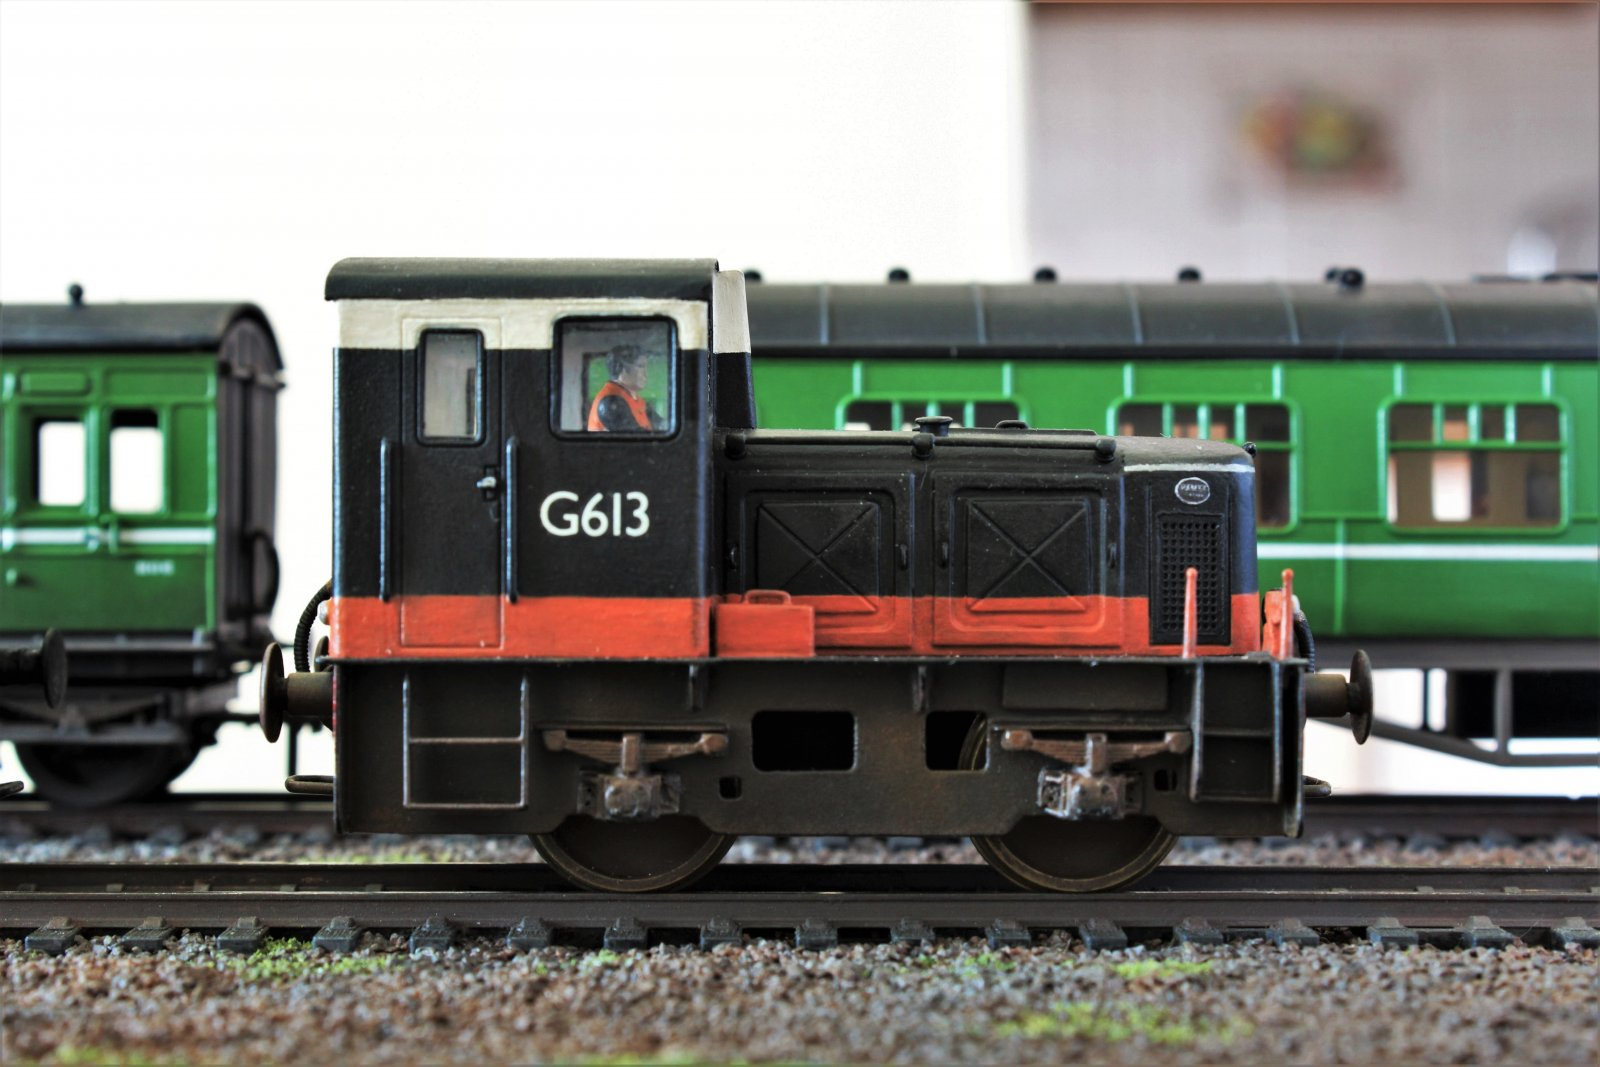 G613 Worsley Works.